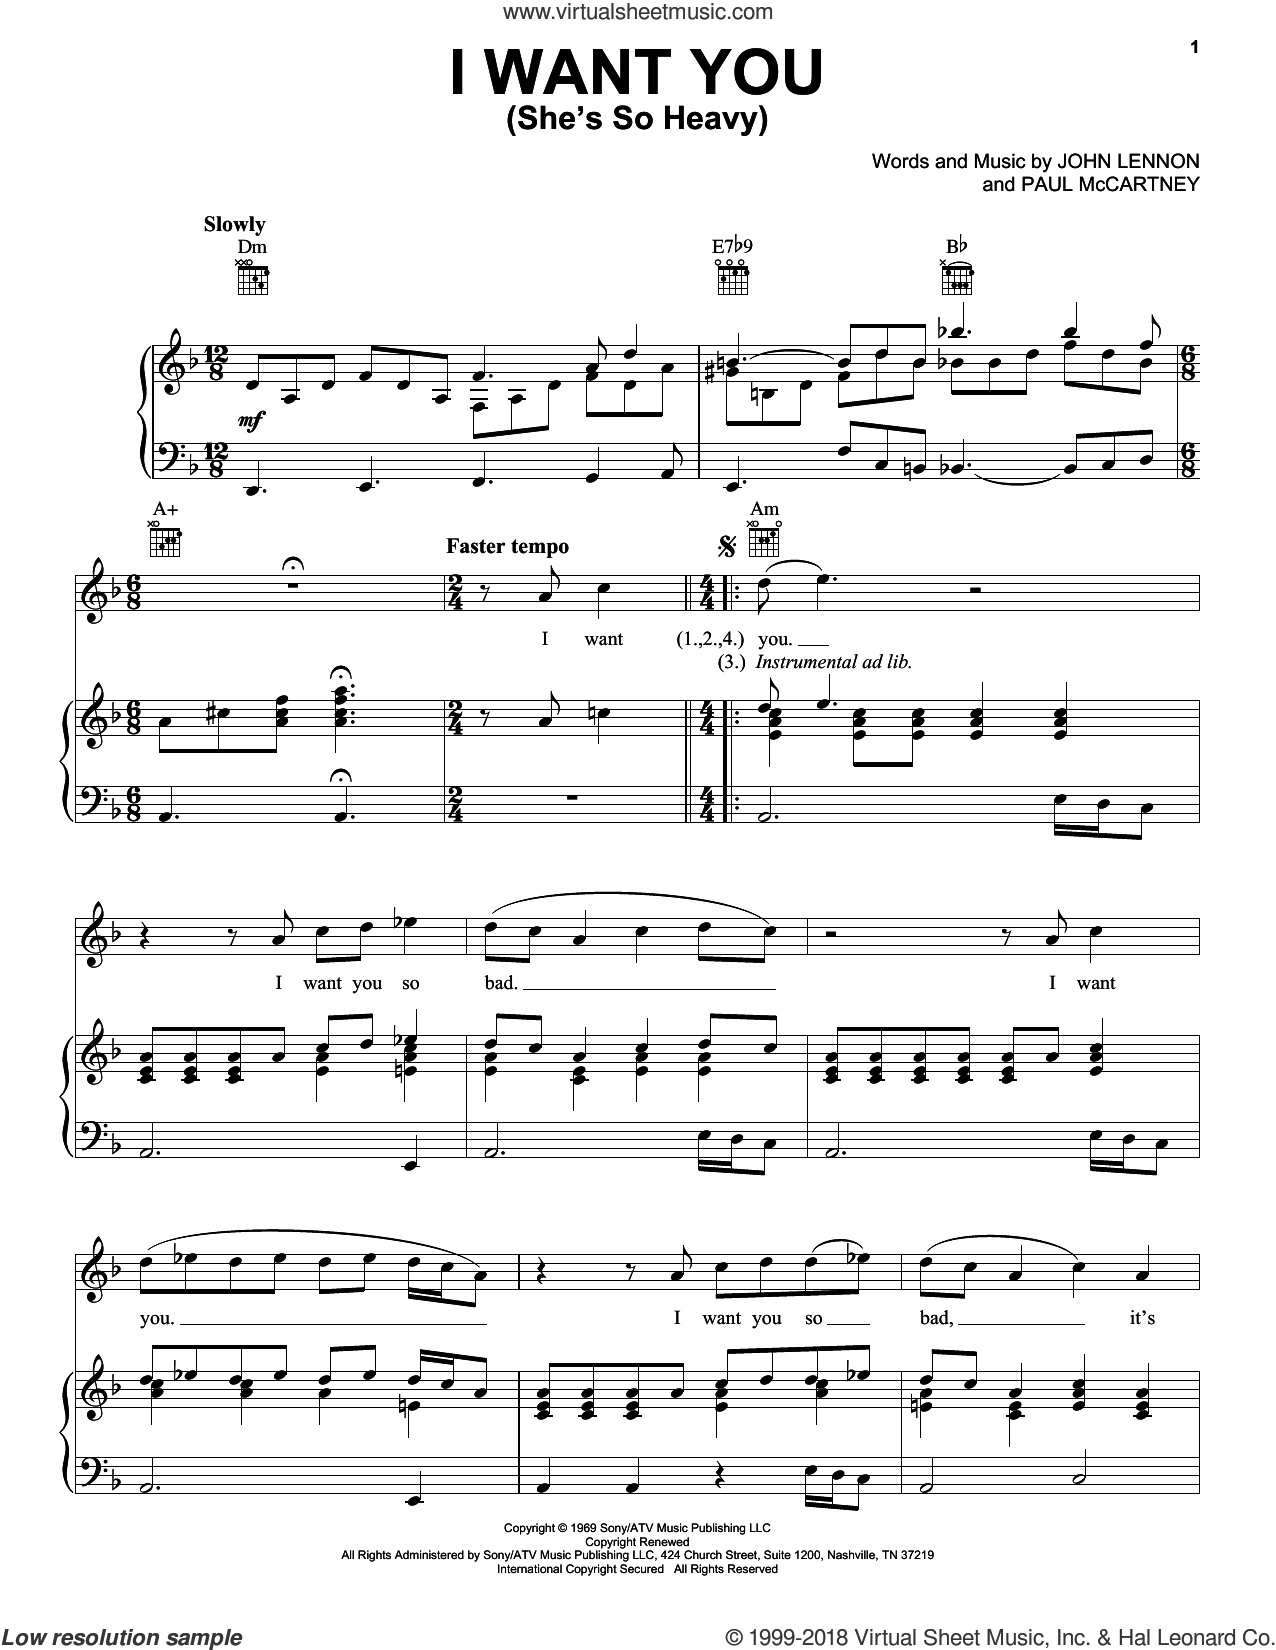 I Want You (She's So Heavy) sheet music for voice, piano or guitar by The Beatles, John Lennon and Paul McCartney, intermediate voice, piano or guitar. Score Image Preview.